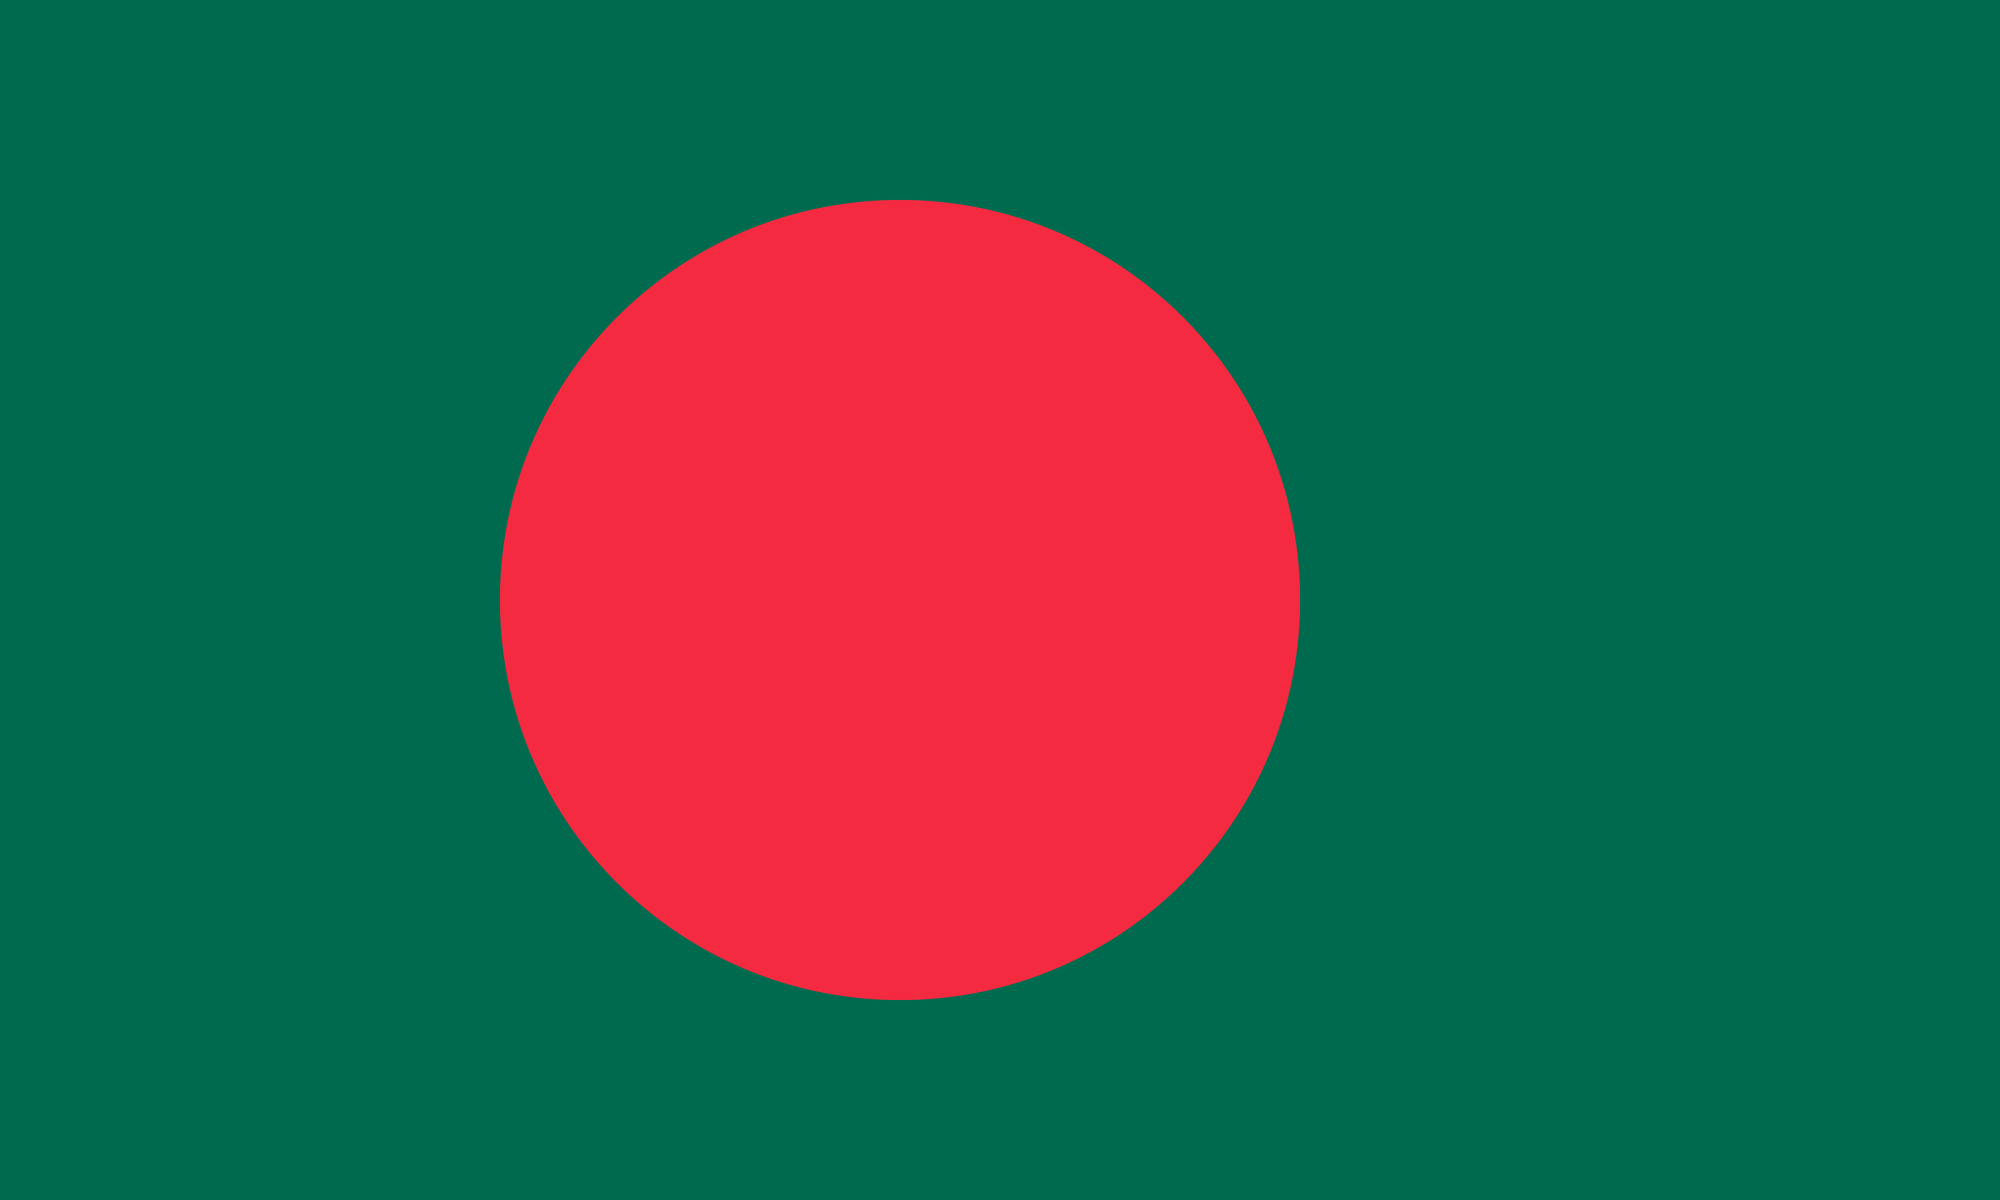 bangladesh-flag-large